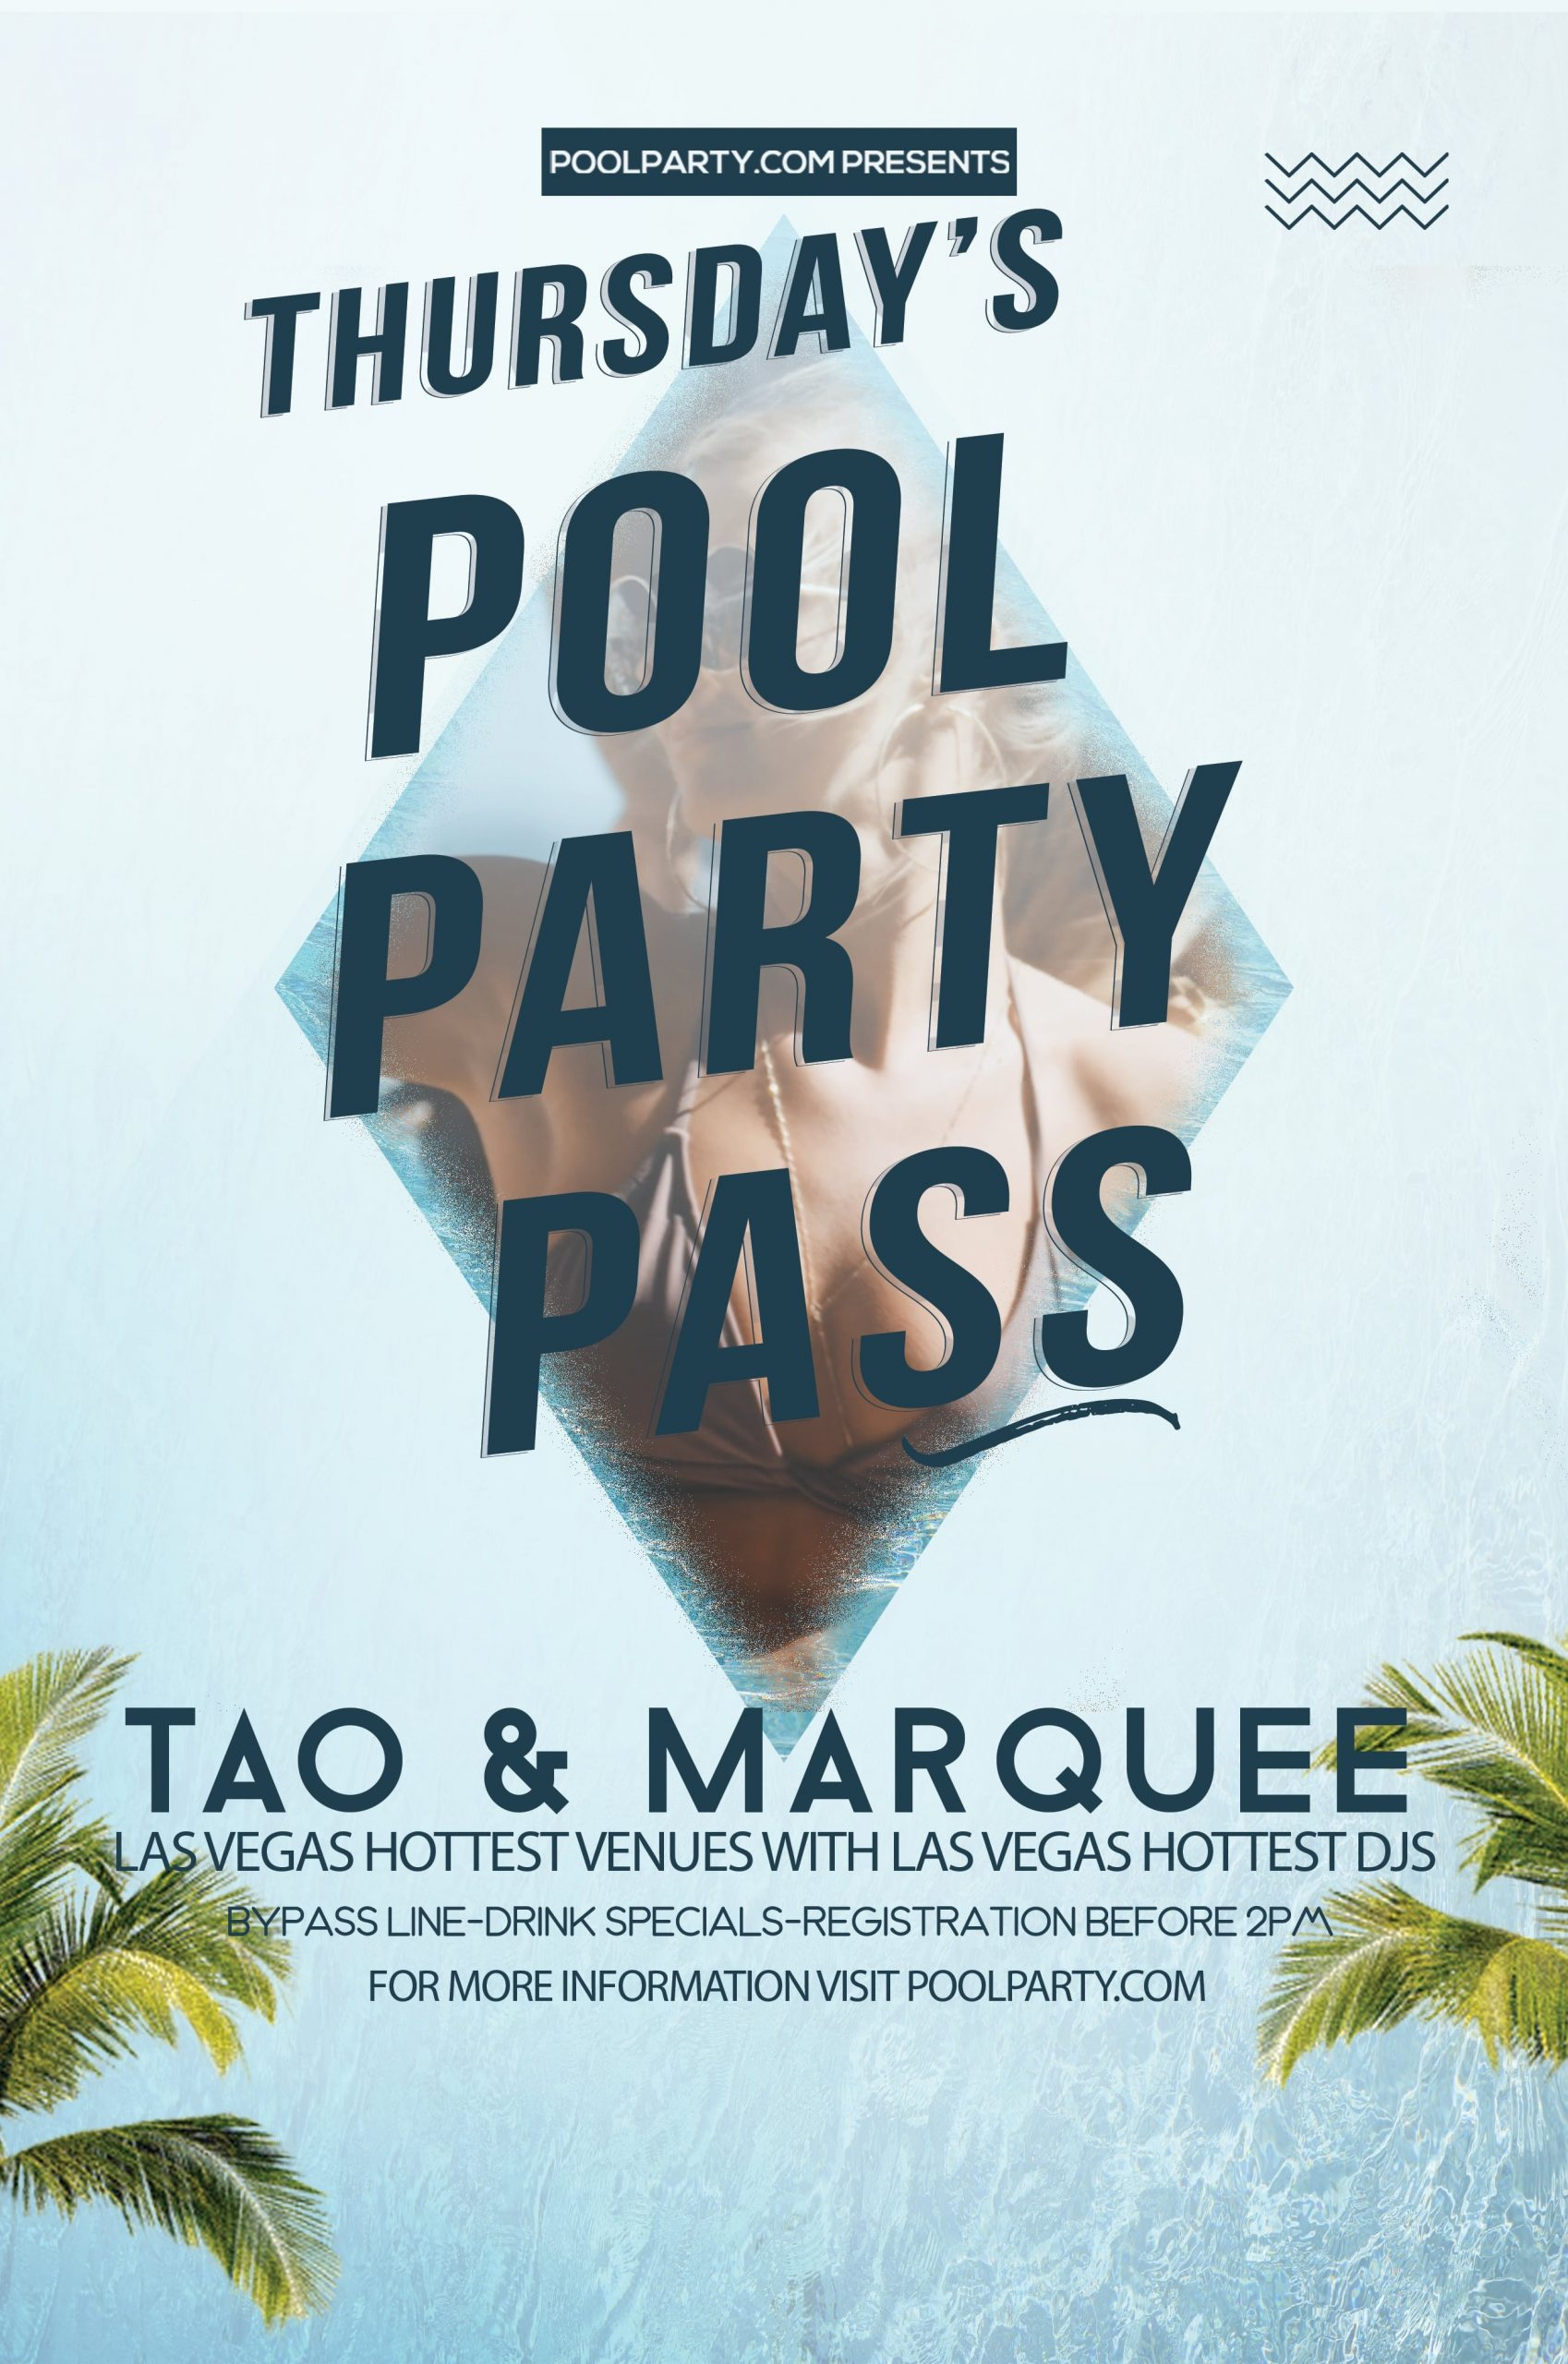 Thursday's Las Vegas Pool Party Pass (May 7th 2020), Vegas Tao & Marquee